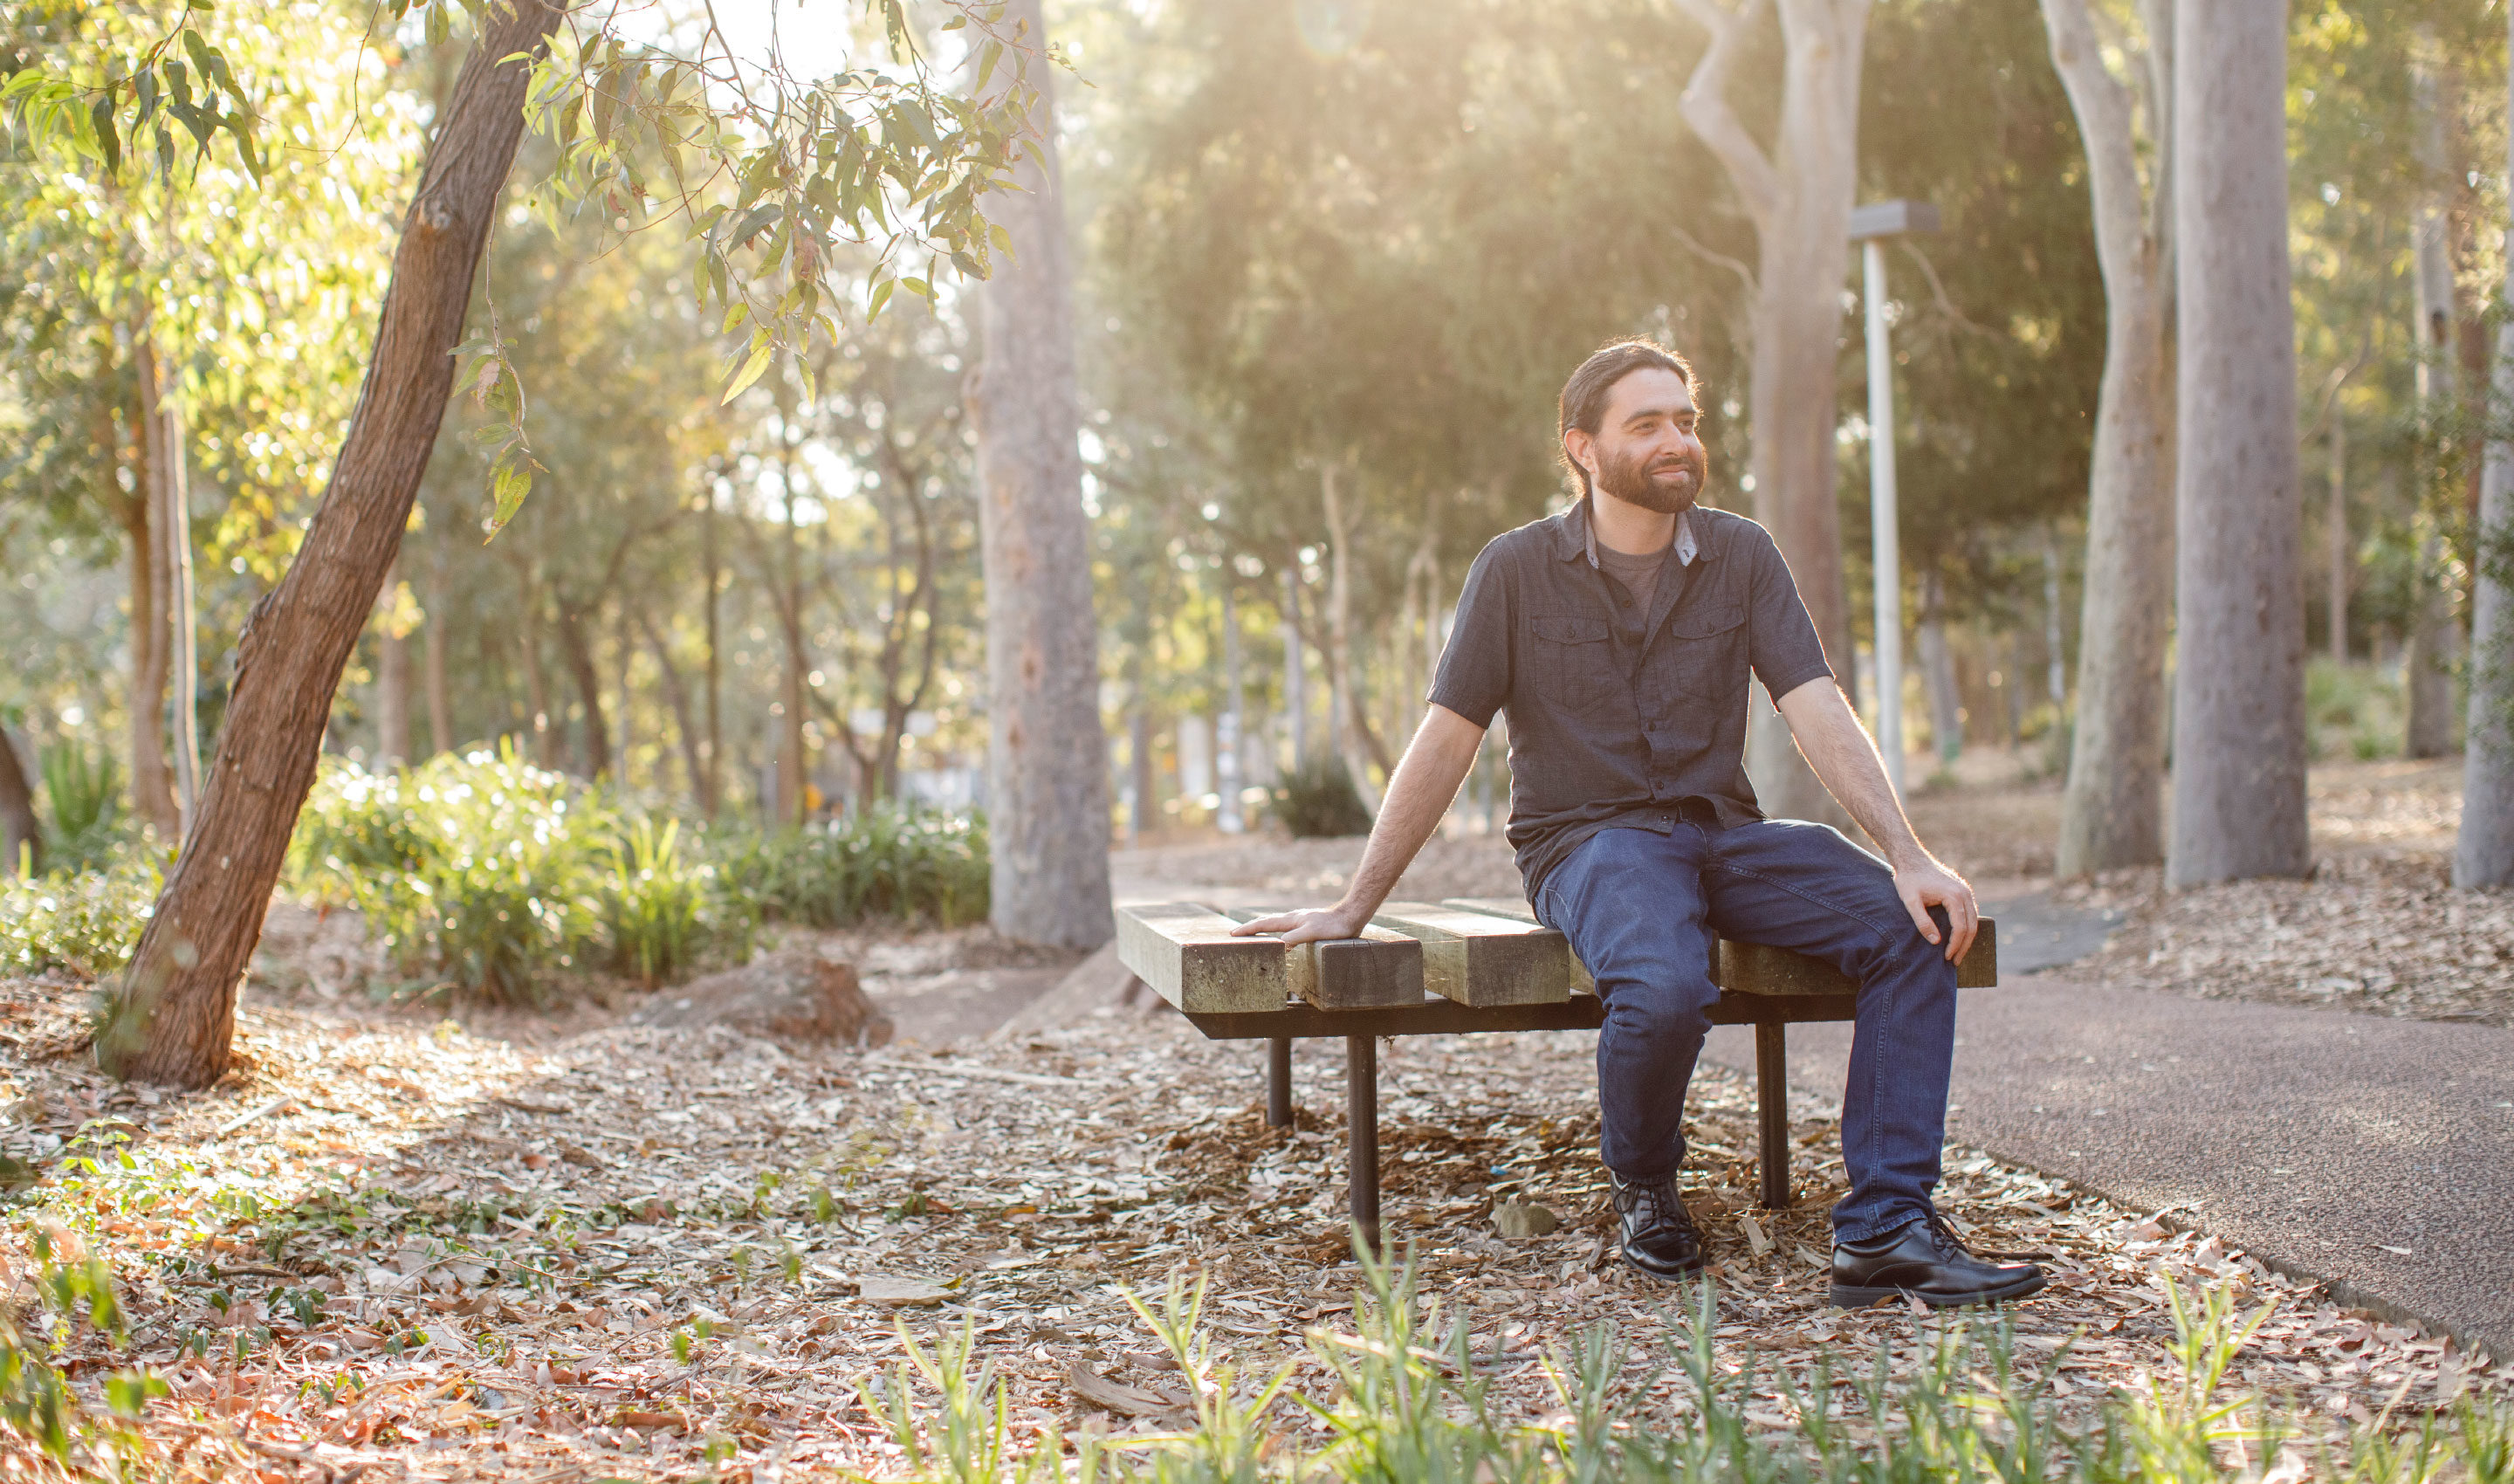 Micheal Assis in jeans and a blue shirt sitting outside on a bench